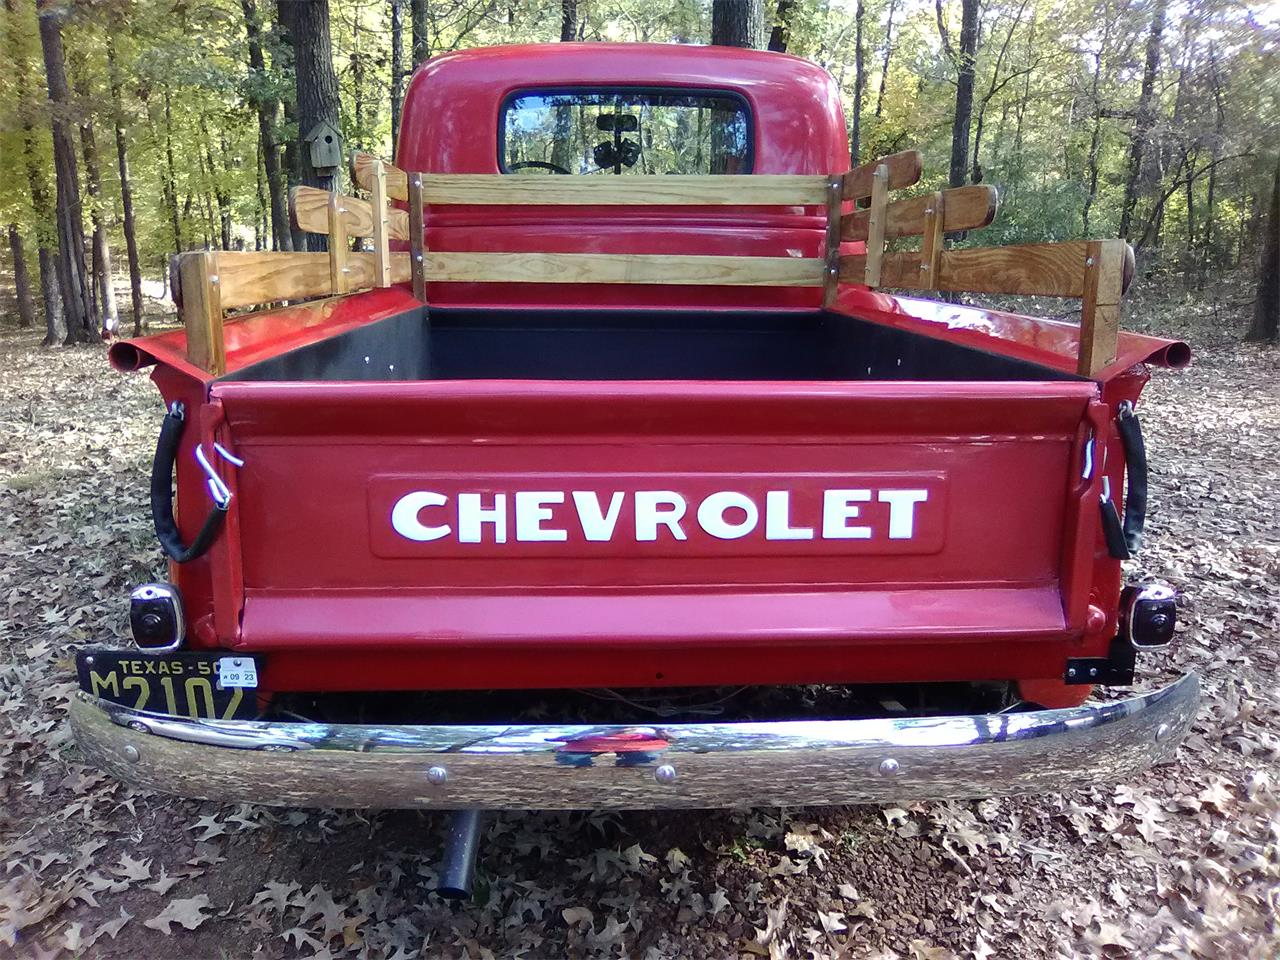 Large Picture of 1950 Chevrolet 3100 located in RUSK Texas Offered by a Private Seller - PA2N